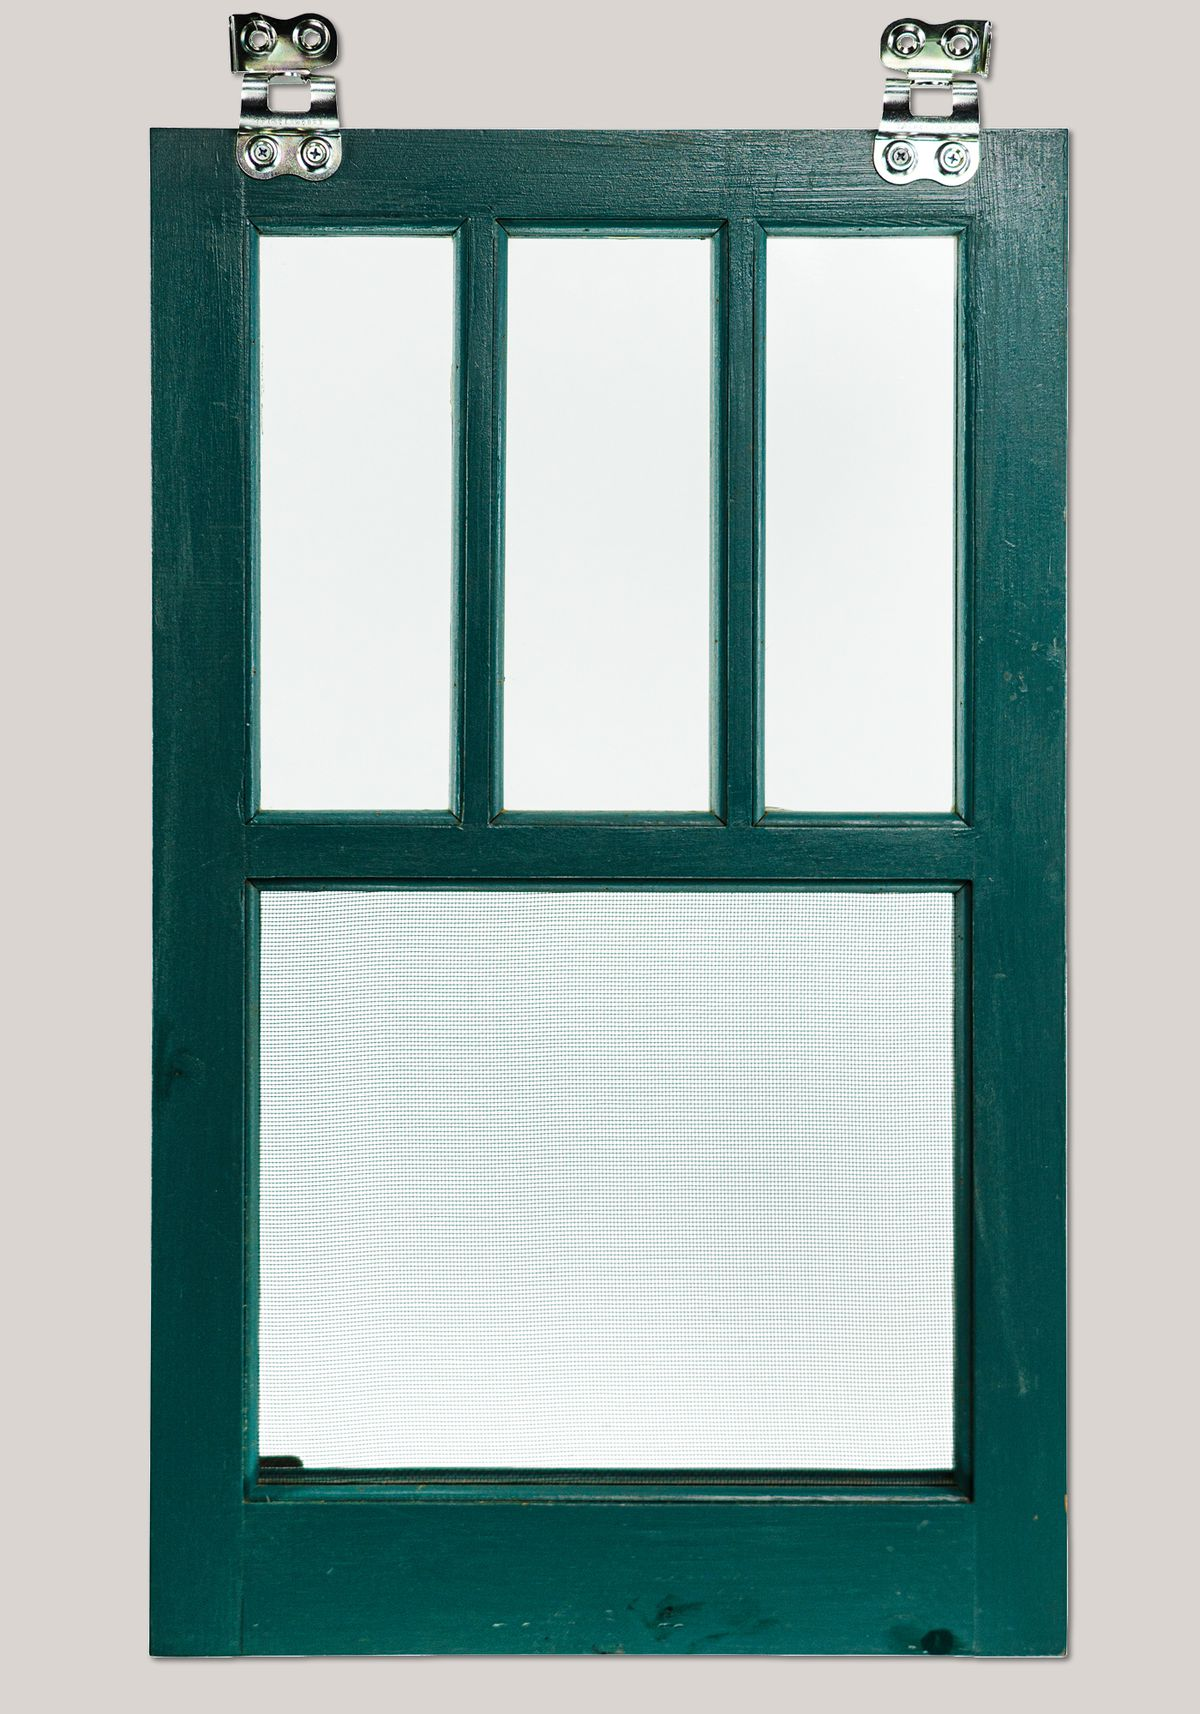 Fall 2021 All About storm windows, wood storm window from SpencerWorks Inc.